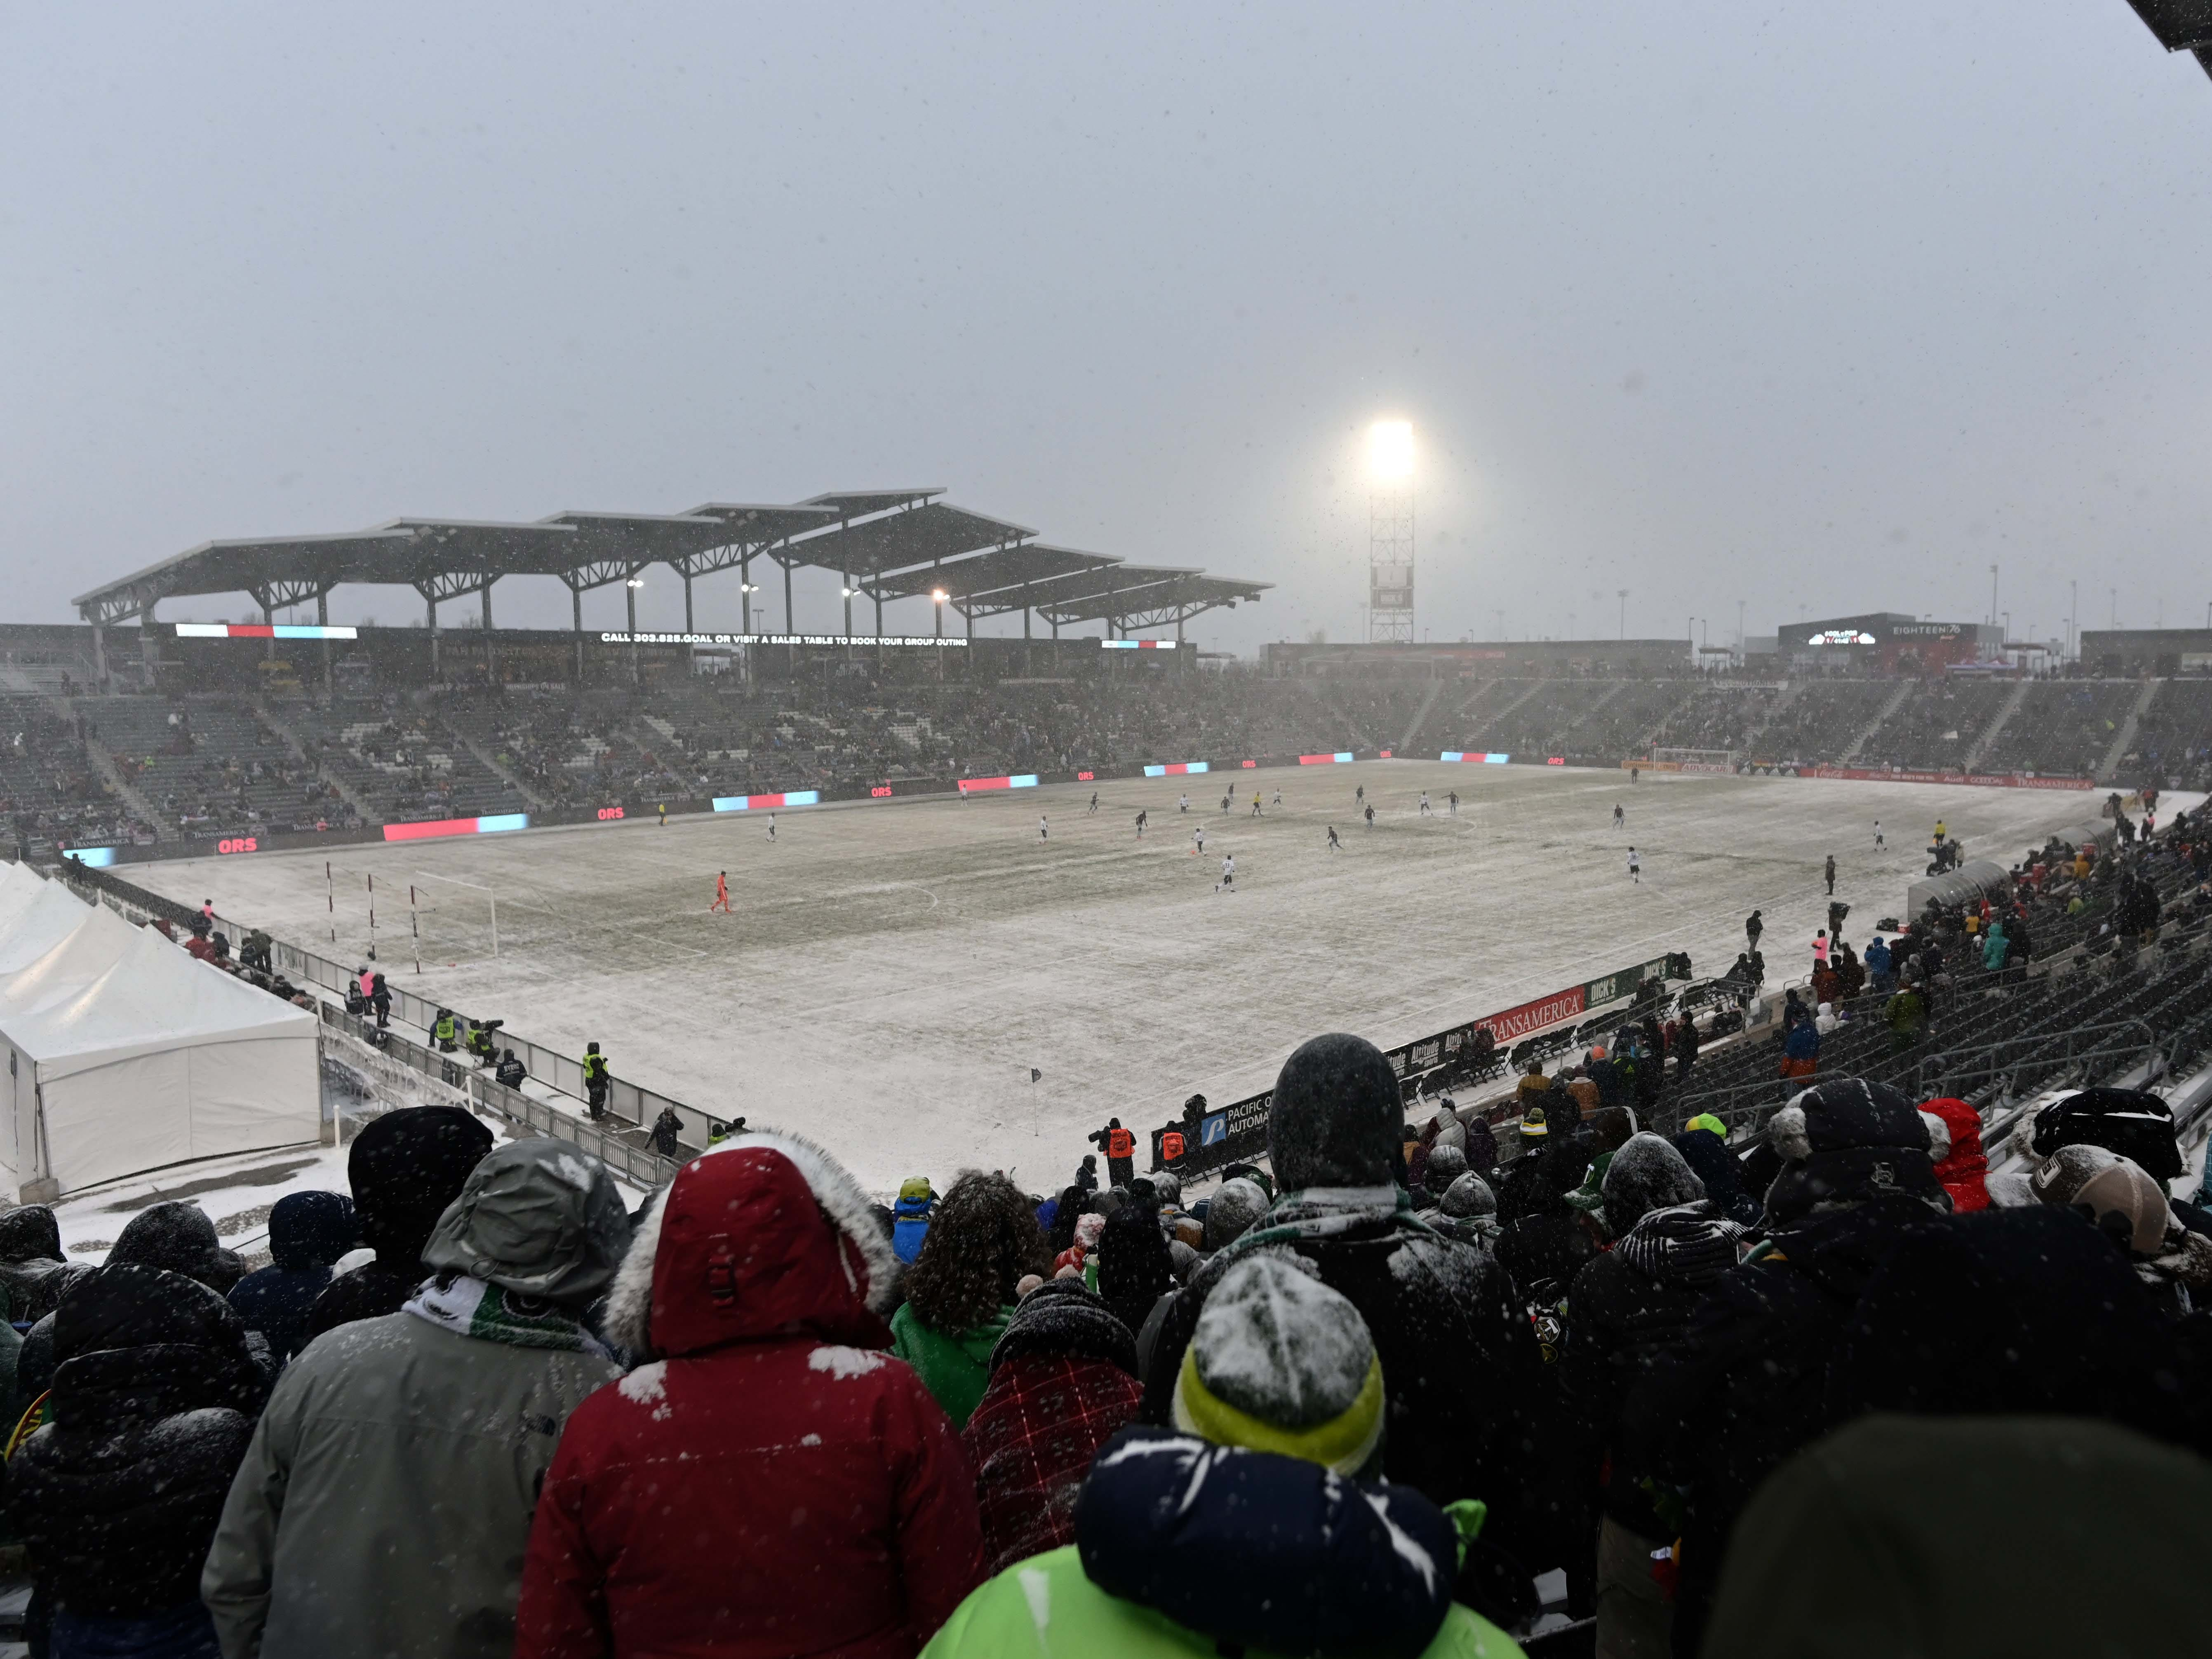 Snow falls during the first half of the match between the Portland Timbers and the Colorado Rapids at Dick's Sporting Goods Park.